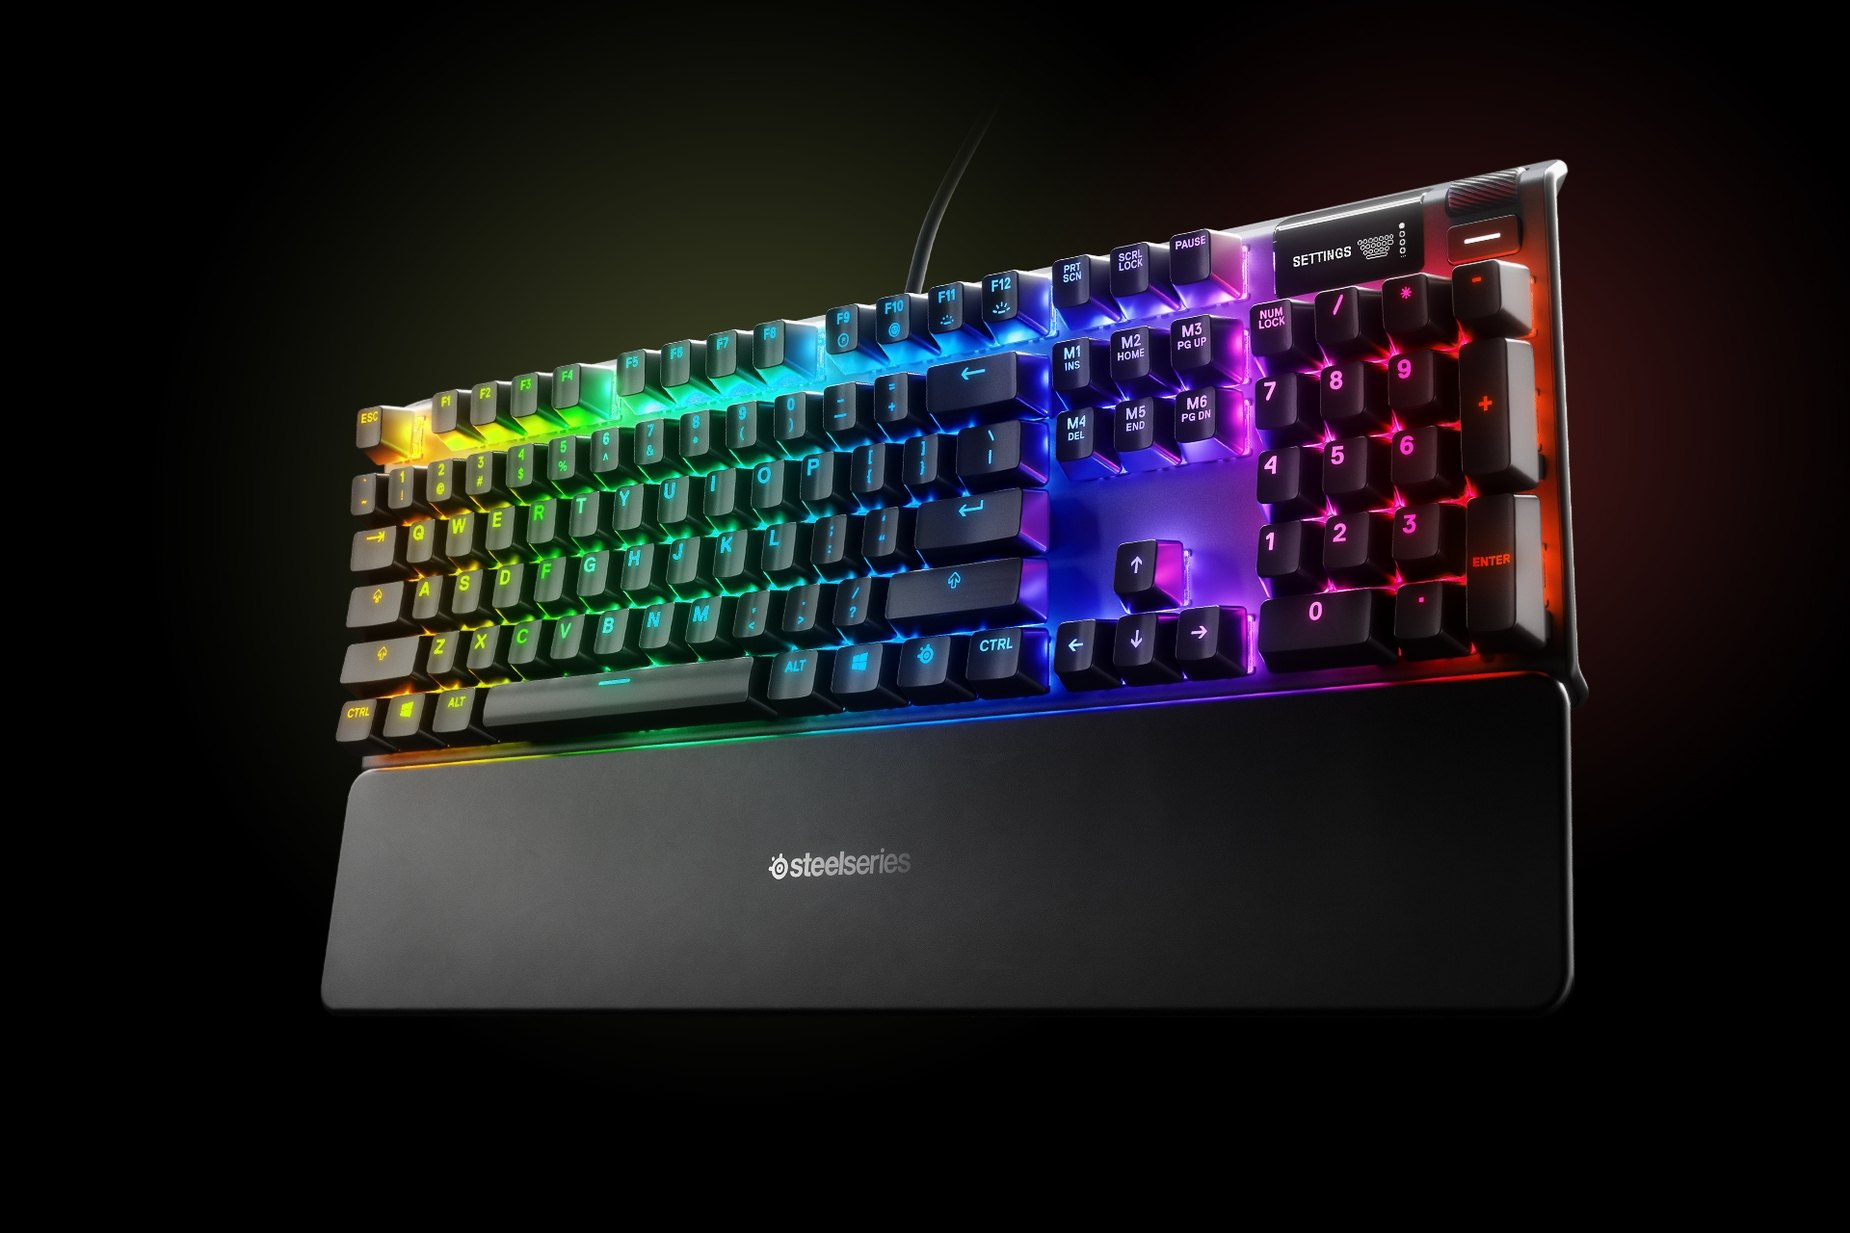 Французский - Apex 7 (красные переключатели) gaming keyboard with the illumination lit up on dark background, also shows the OLED screen and controls used to change settings and adjust audio